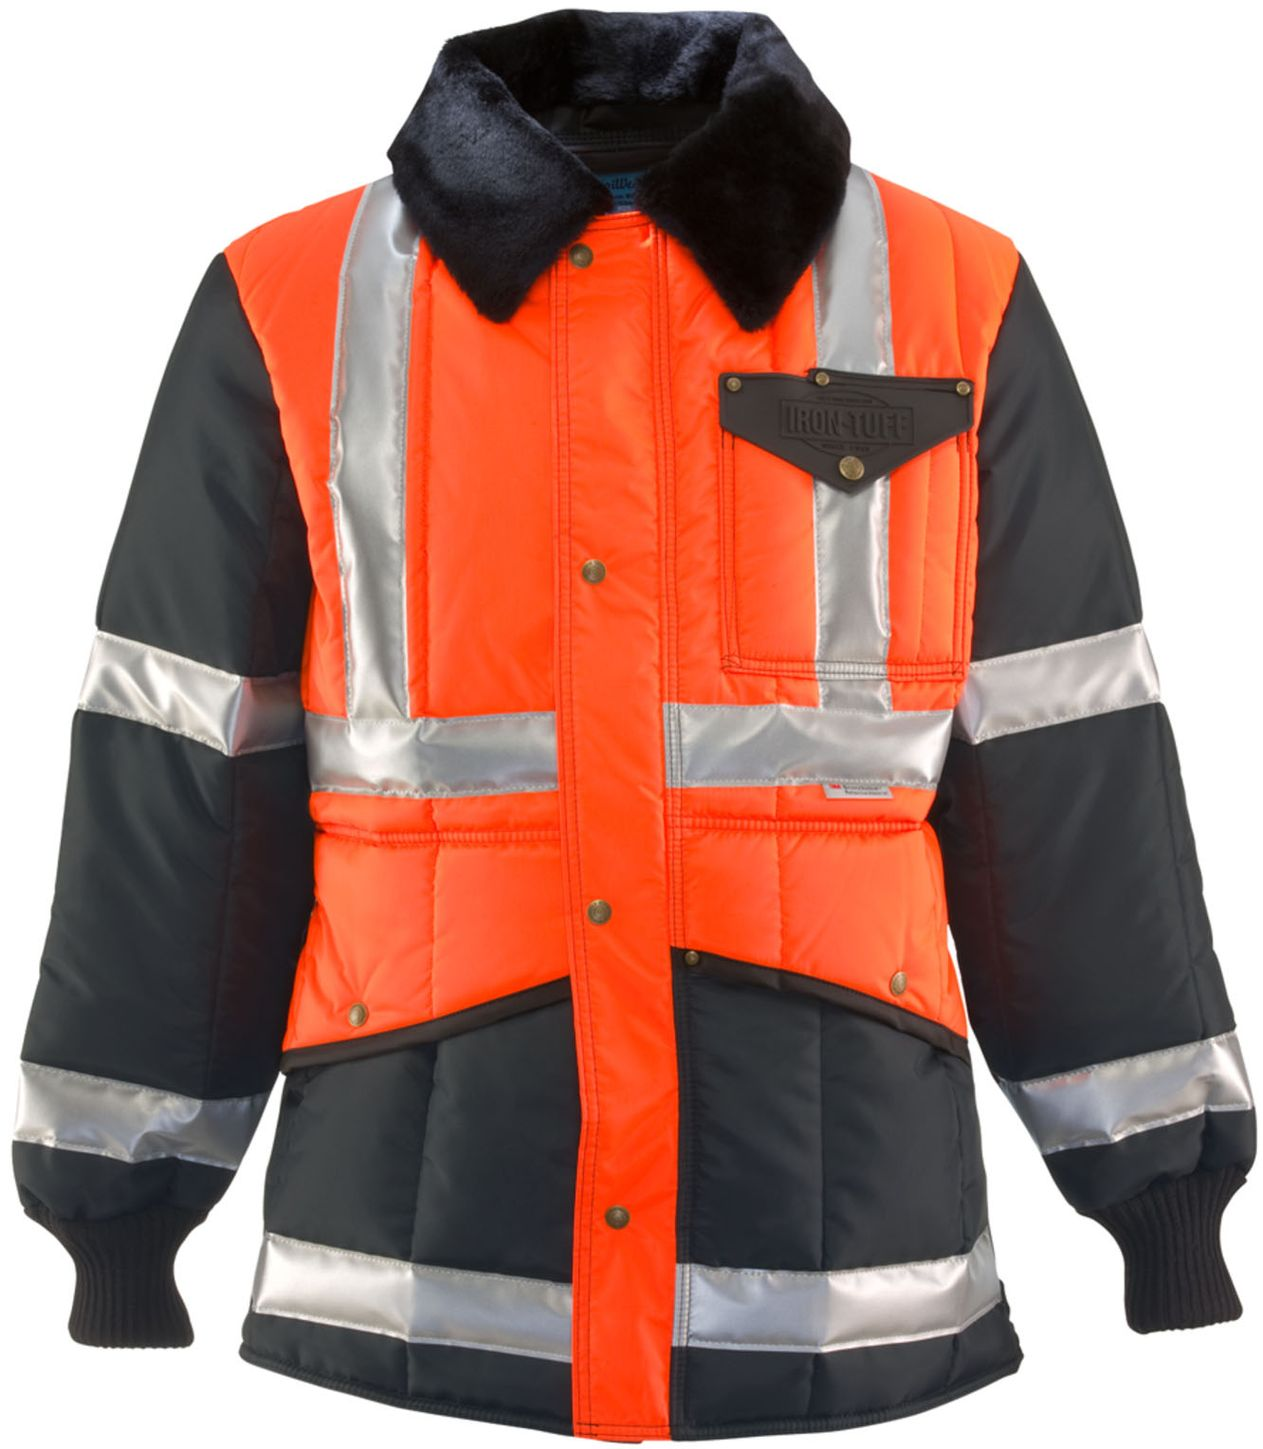 RefrigiWear 0342 - HiVis Iron-Tuff Two-Tone Jackoat Orange-Navy Front